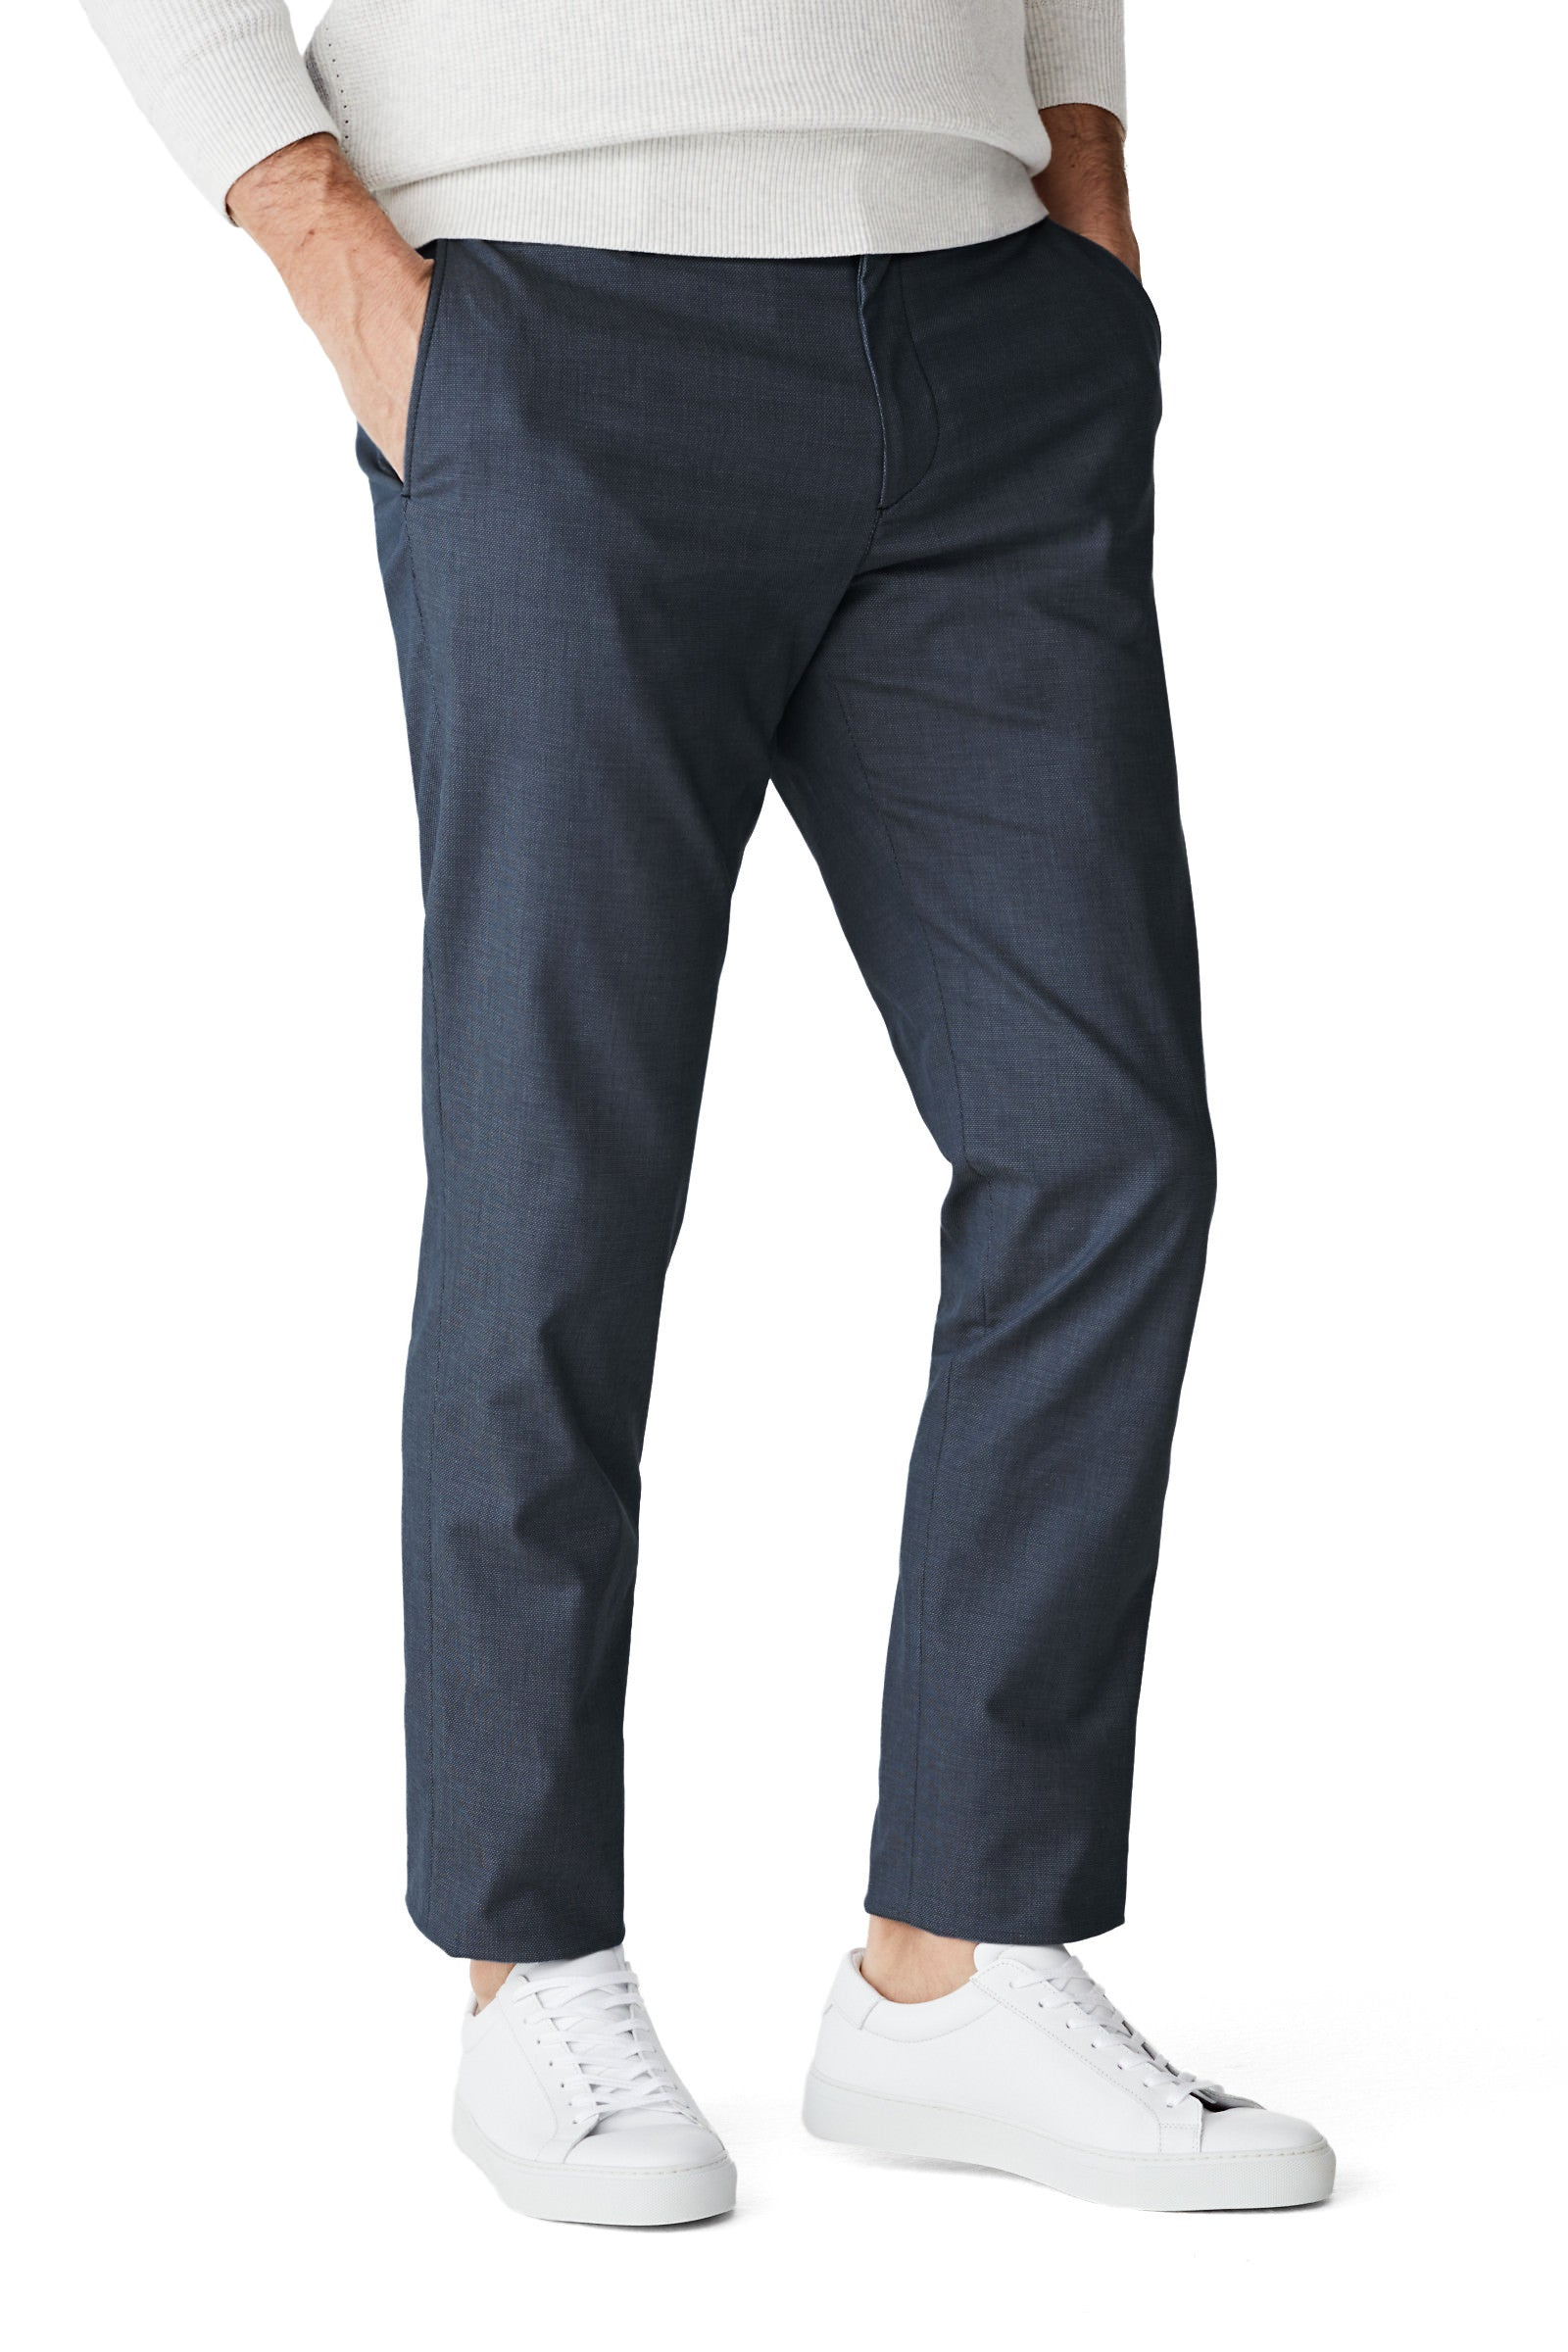 McG Regular fit chino